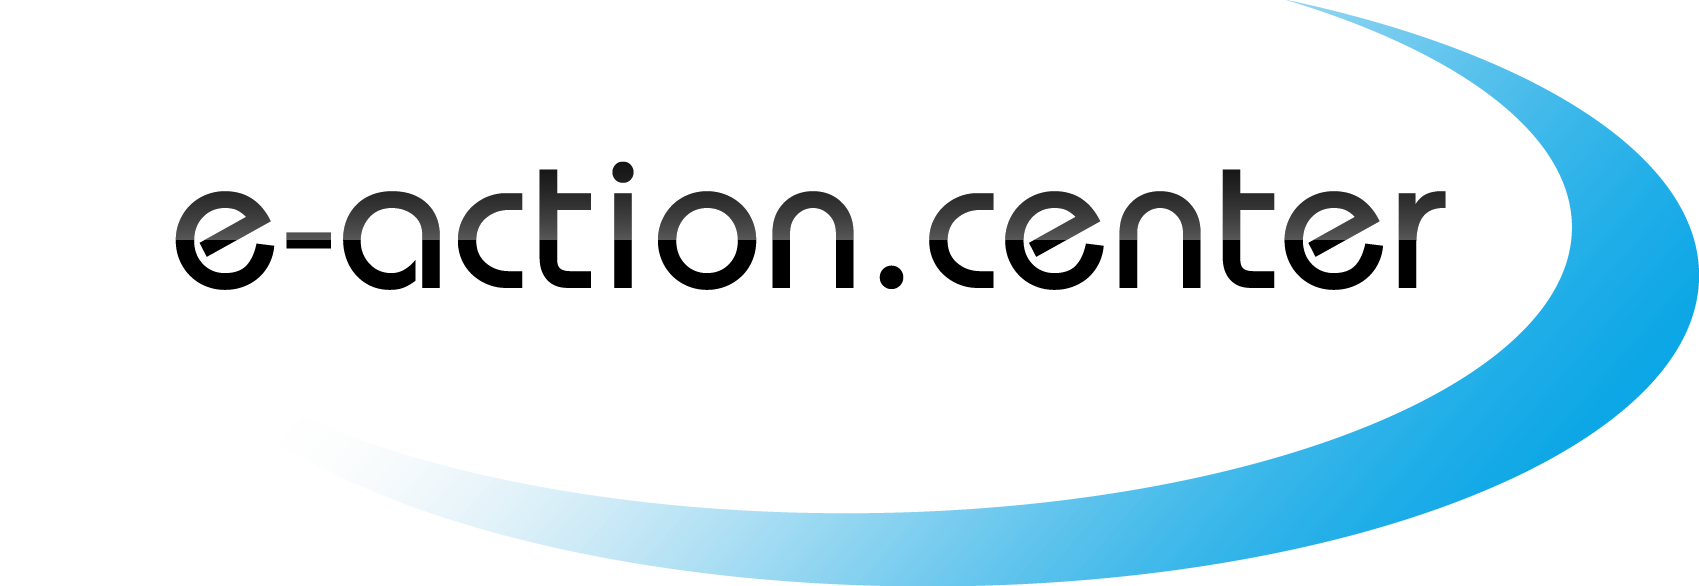 eac GmbH / www.e-action.center logo